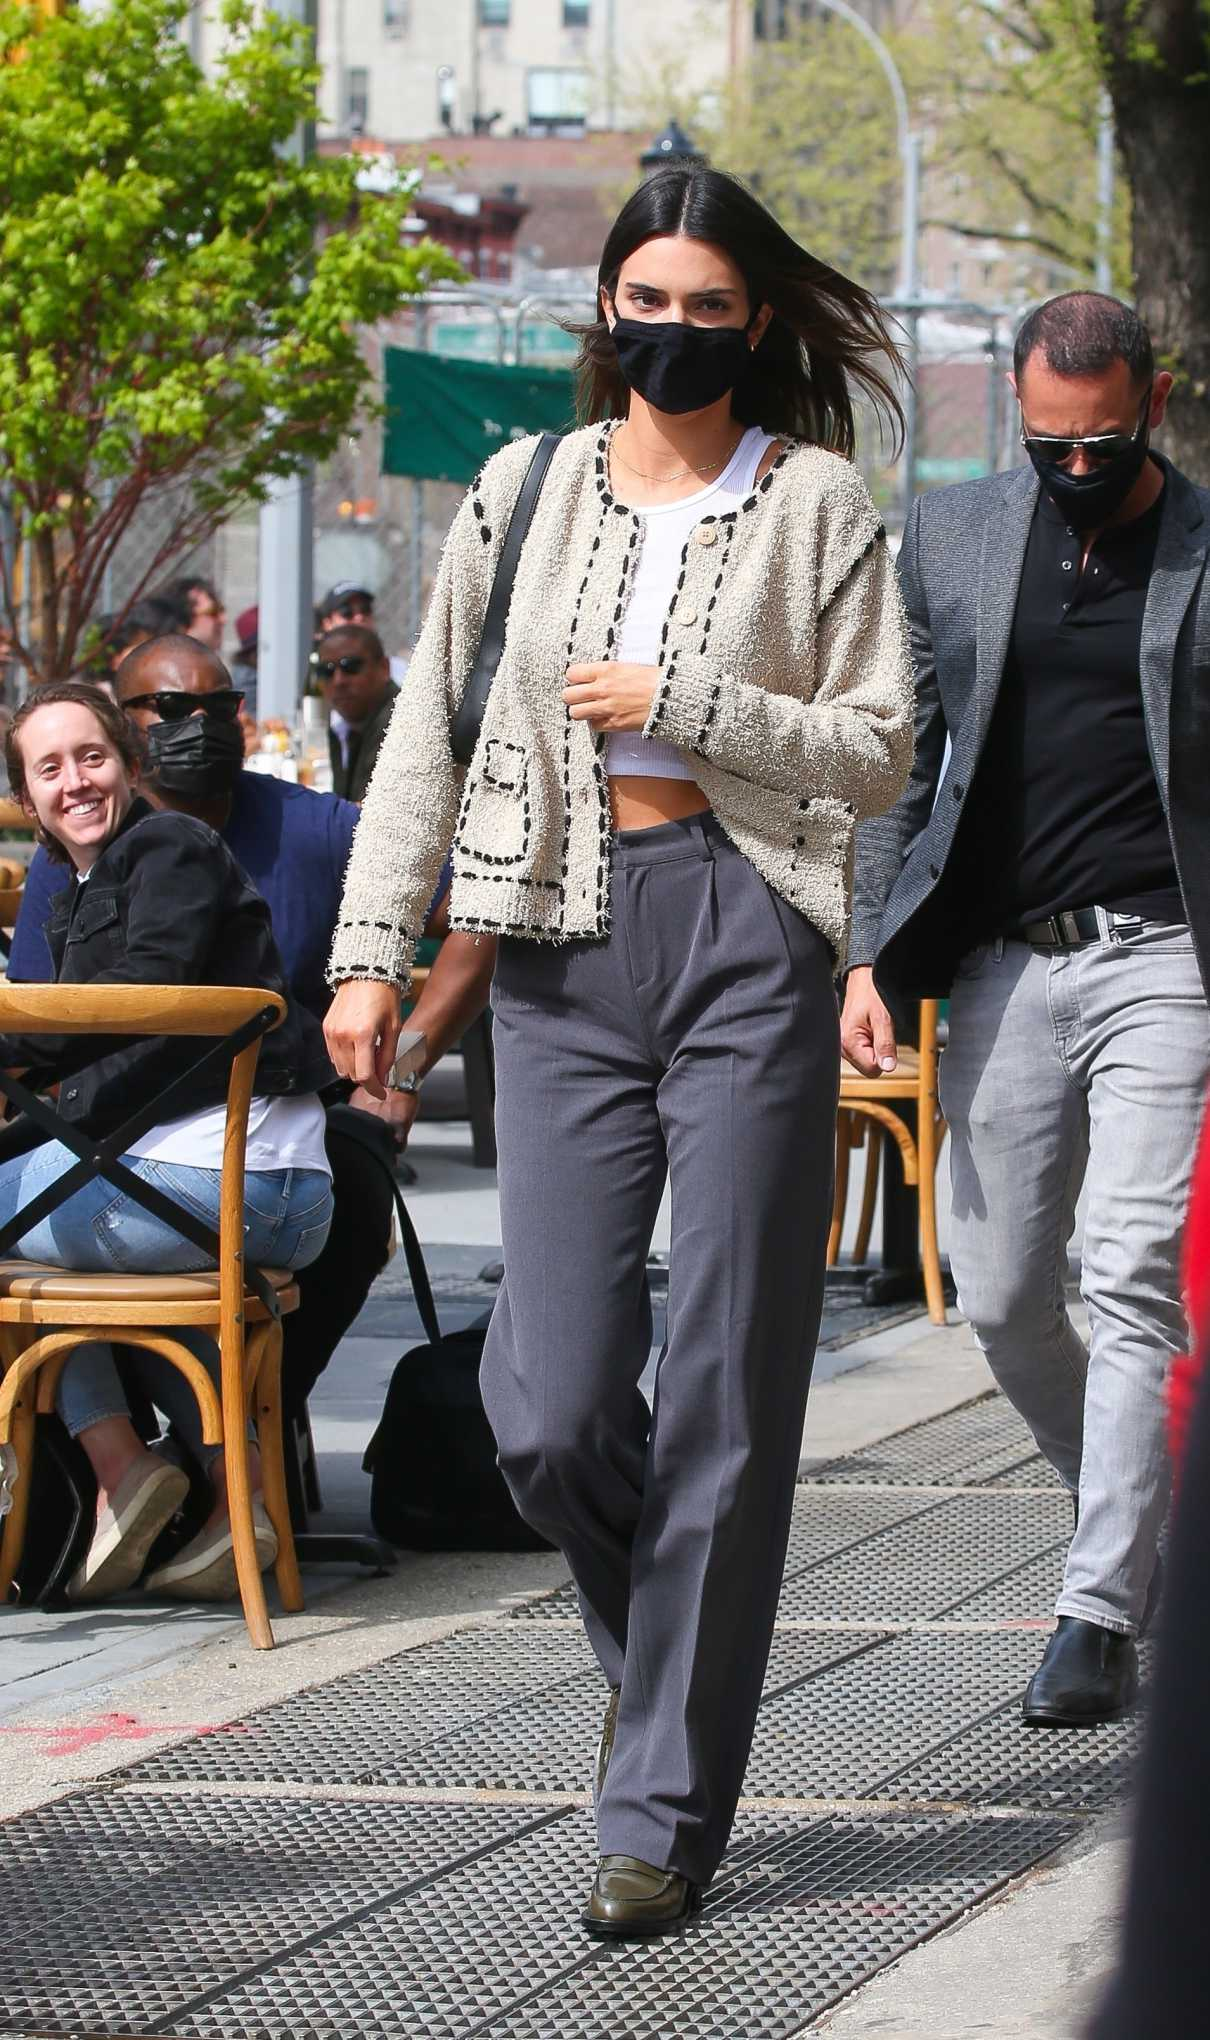 Kendall Jenner in a Black Protective Mask Joins Her Boyfriend Devin Booker for Lunch at Bar Pitti in New York 04/24/2021